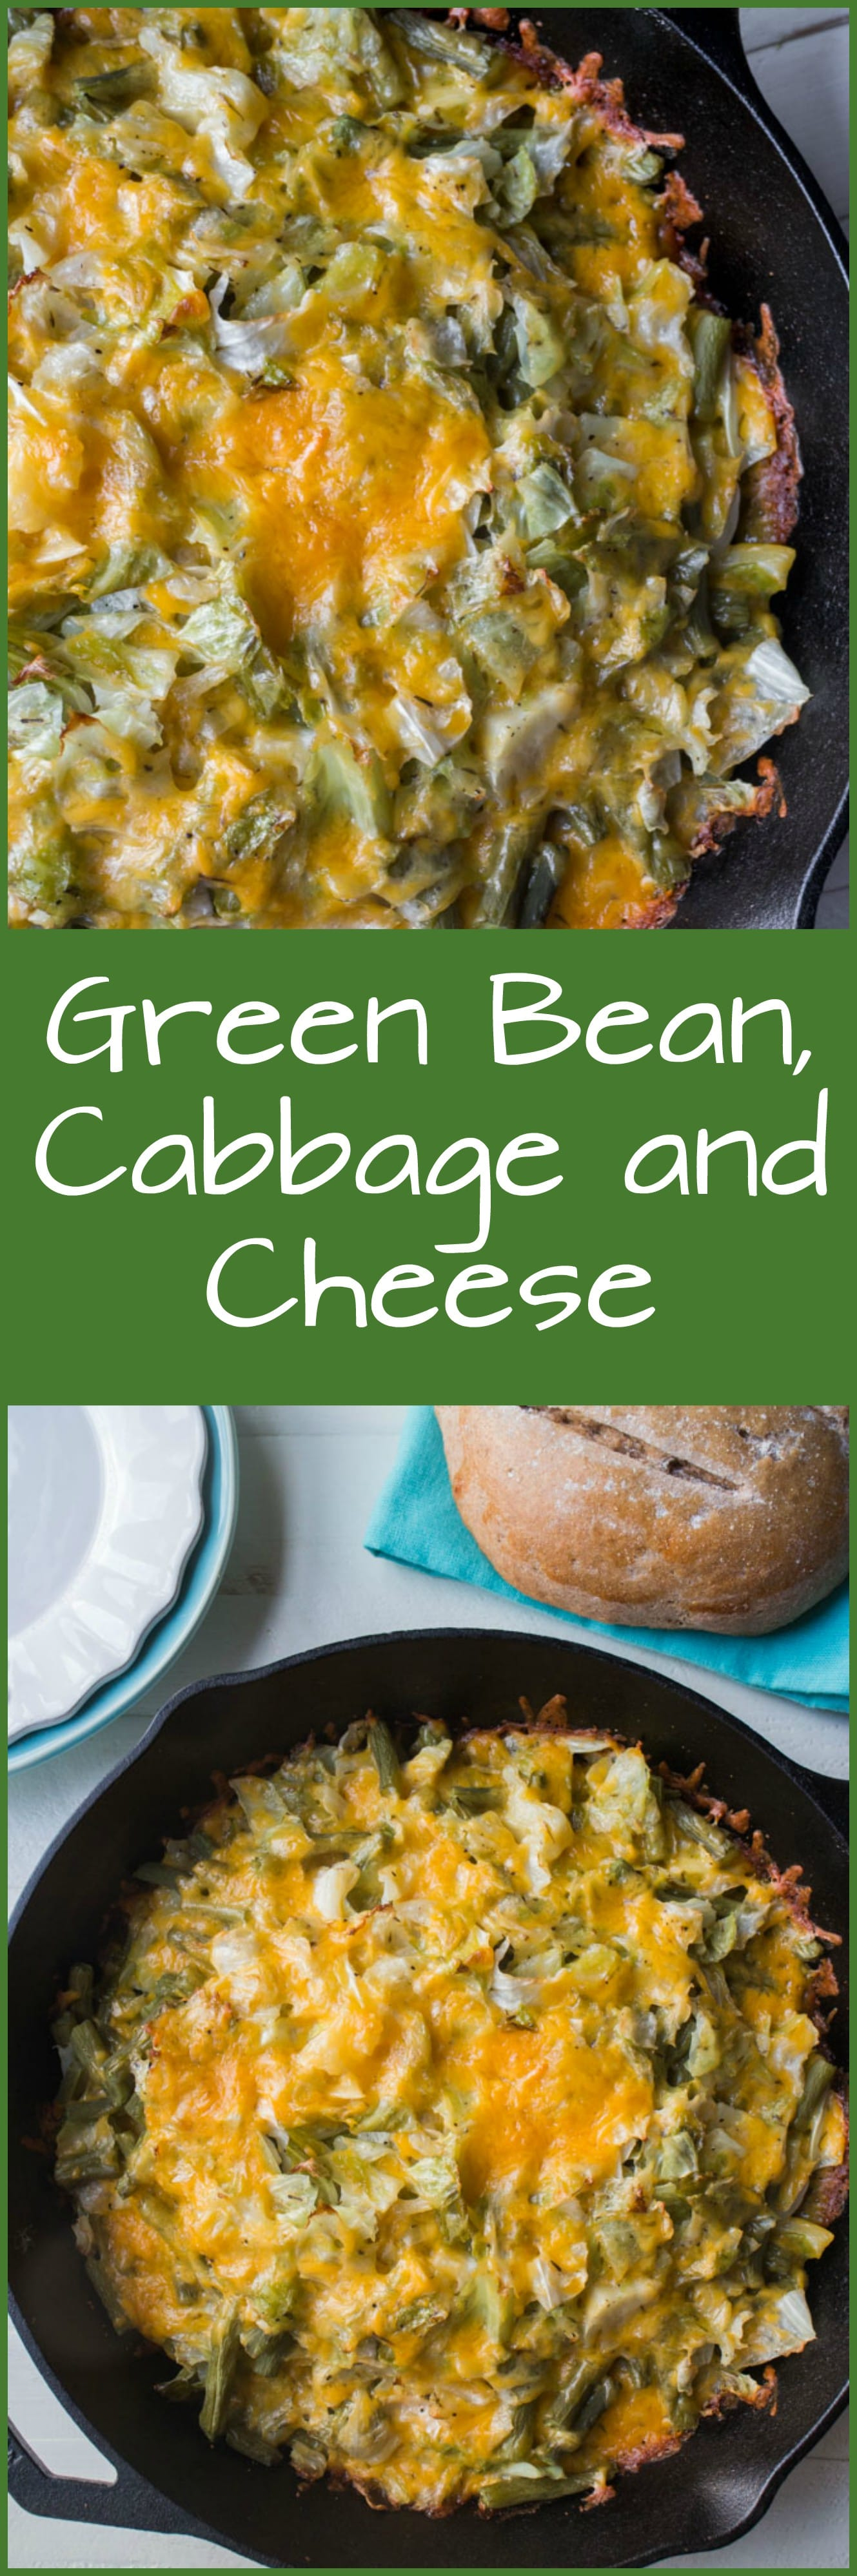 how to cook a green cabbage